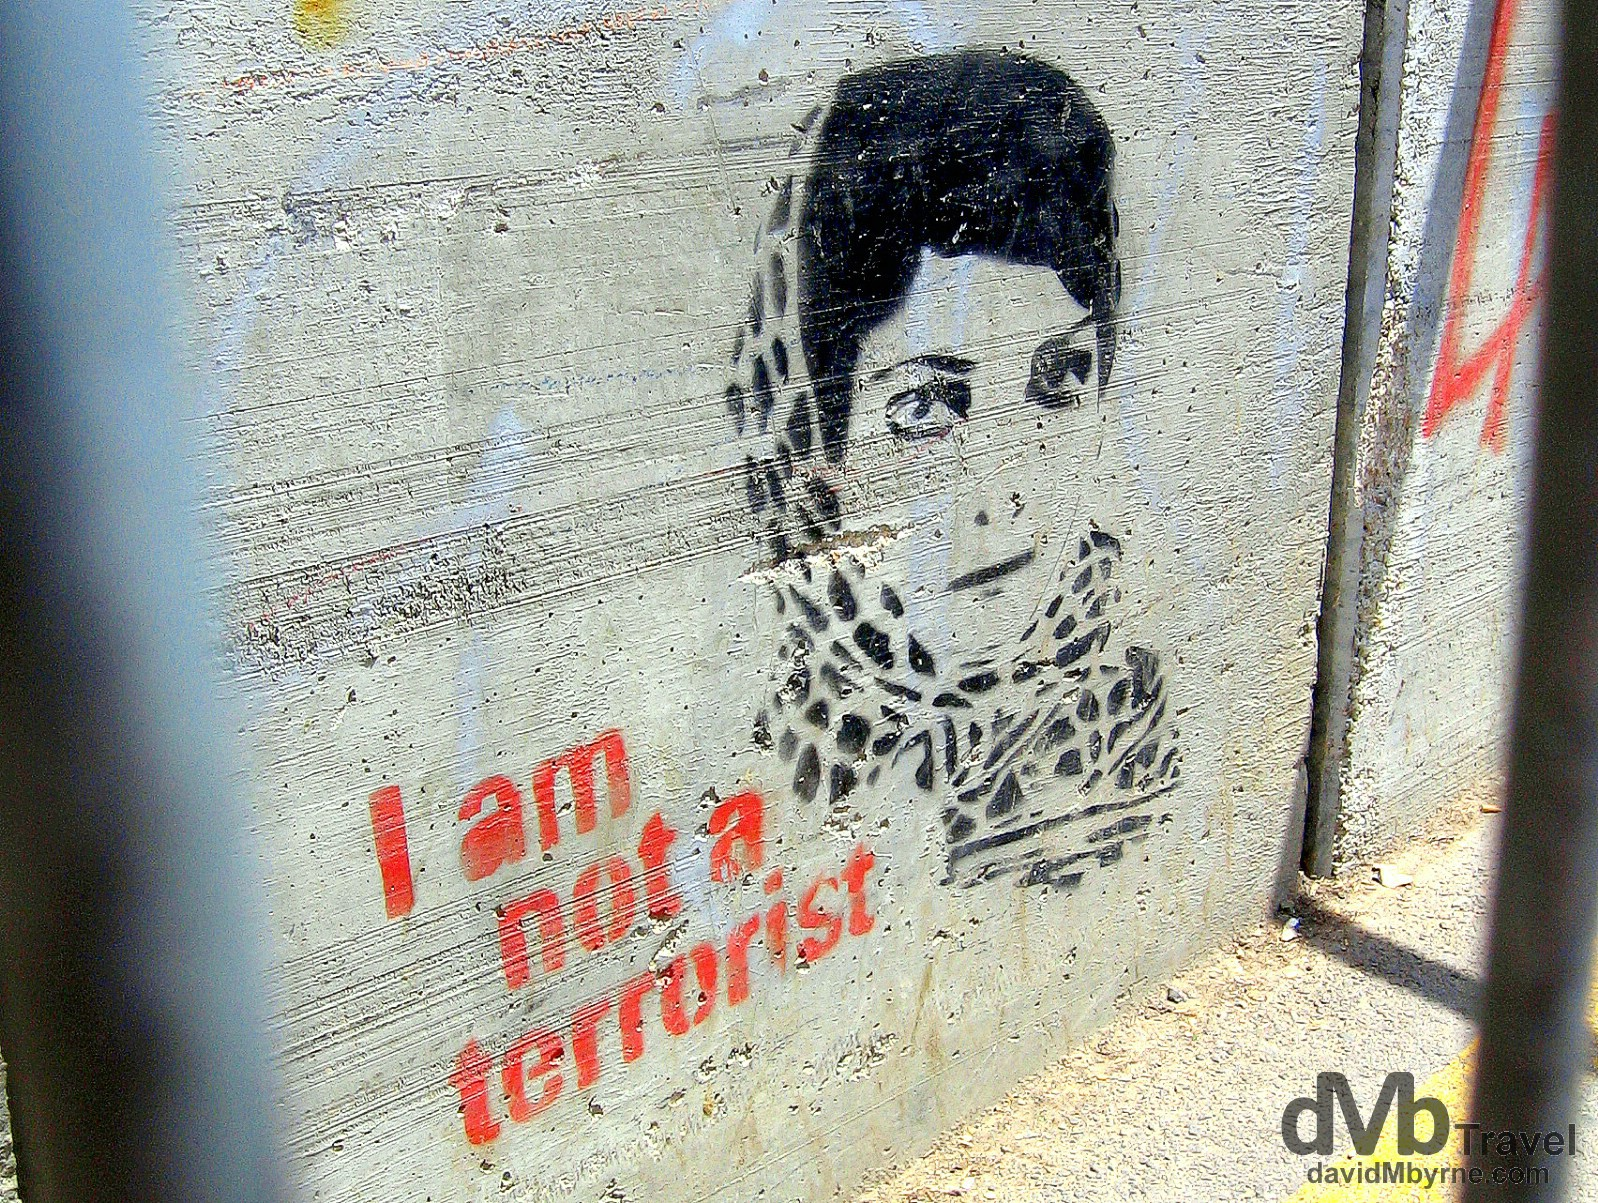 I am not a terrorist. A section of the heavily guarded wall separating the Palestinian West Back from Israel. May 2, 2008.